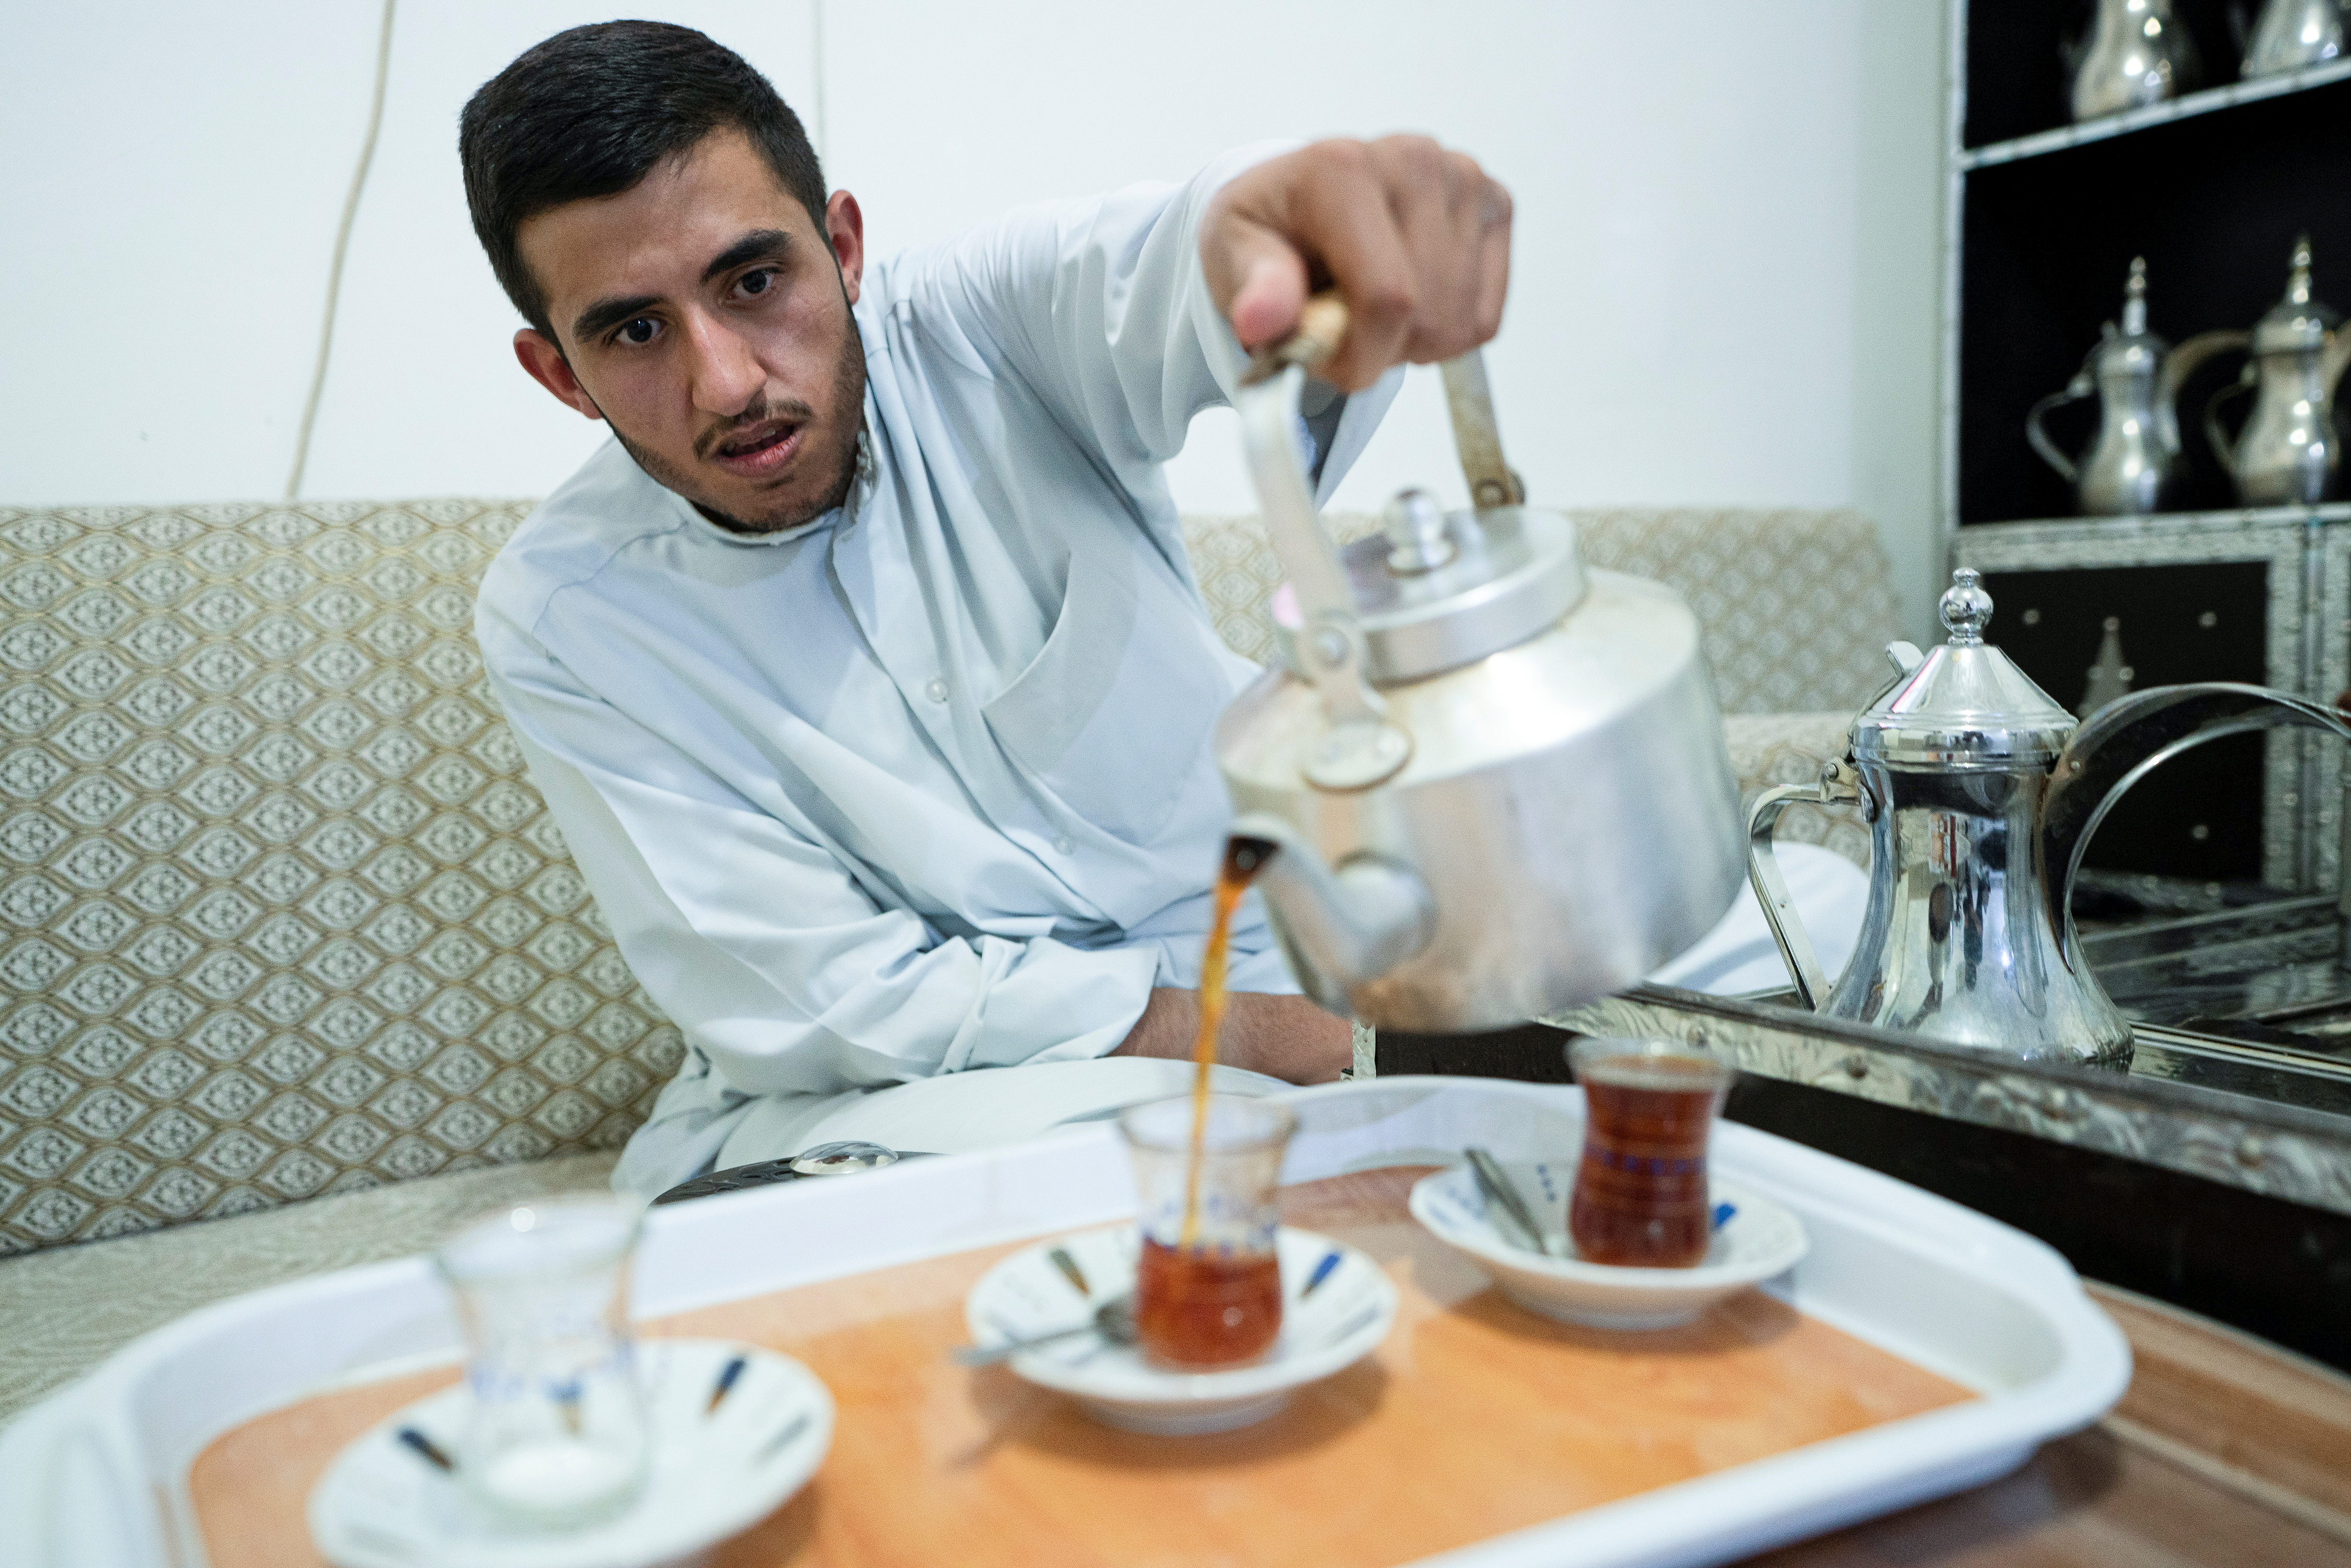 Ahmad al-Enezi, a stateless frontline worker pours tea at his home in Sulaibiya, Kuwait September 6,2021. REUTERS/Stephanie McGehee